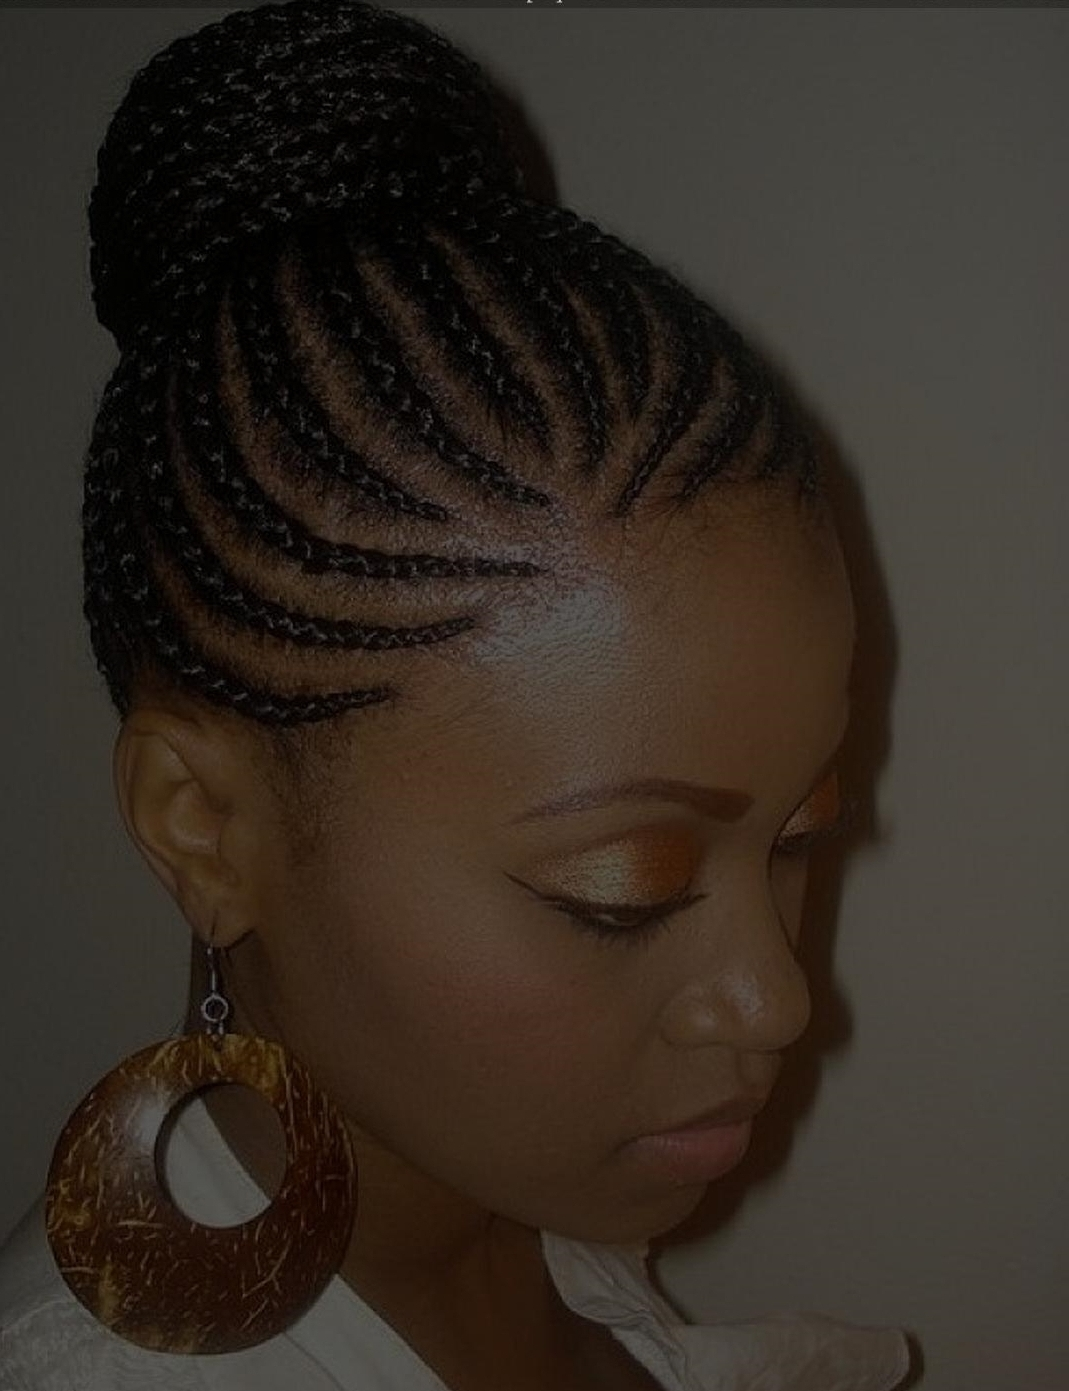 Simple Cornrow Braided Updo Hairstyles 80 Ideas With Cornrow Braided For Elegant Cornrow Updo Hairstyles (View 4 of 15)